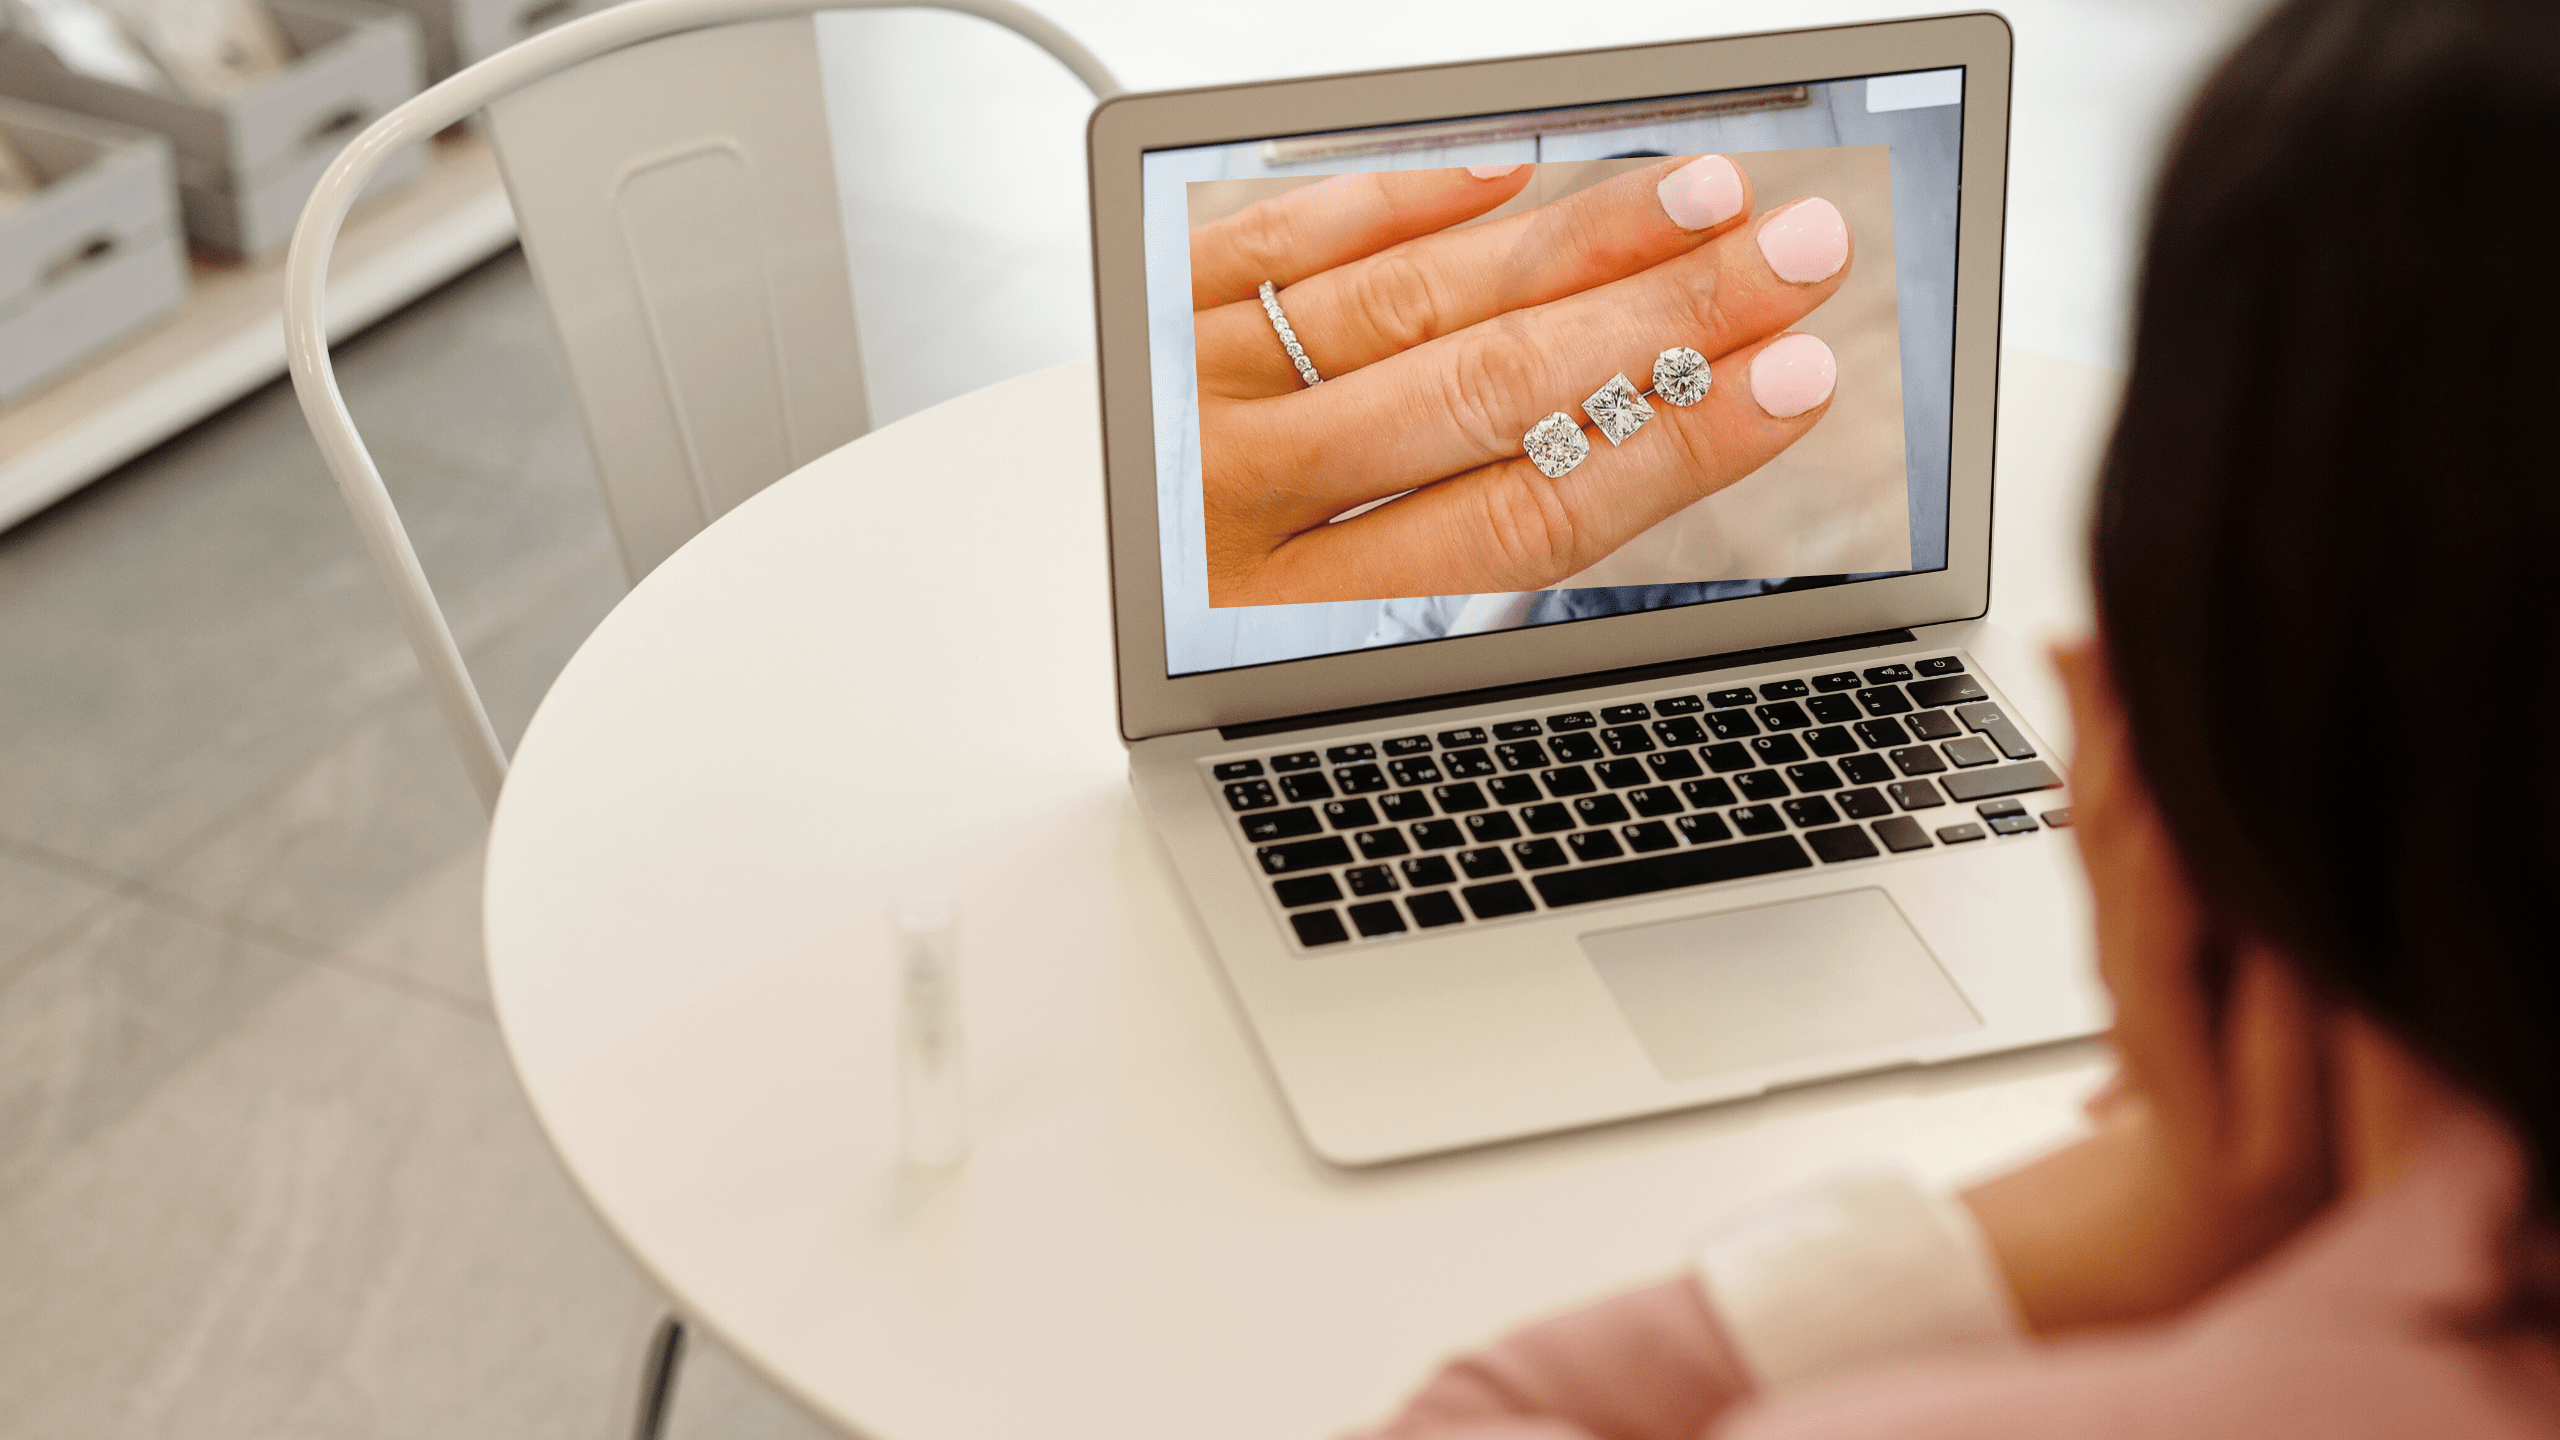 Virtual Engagement Ring Shopping